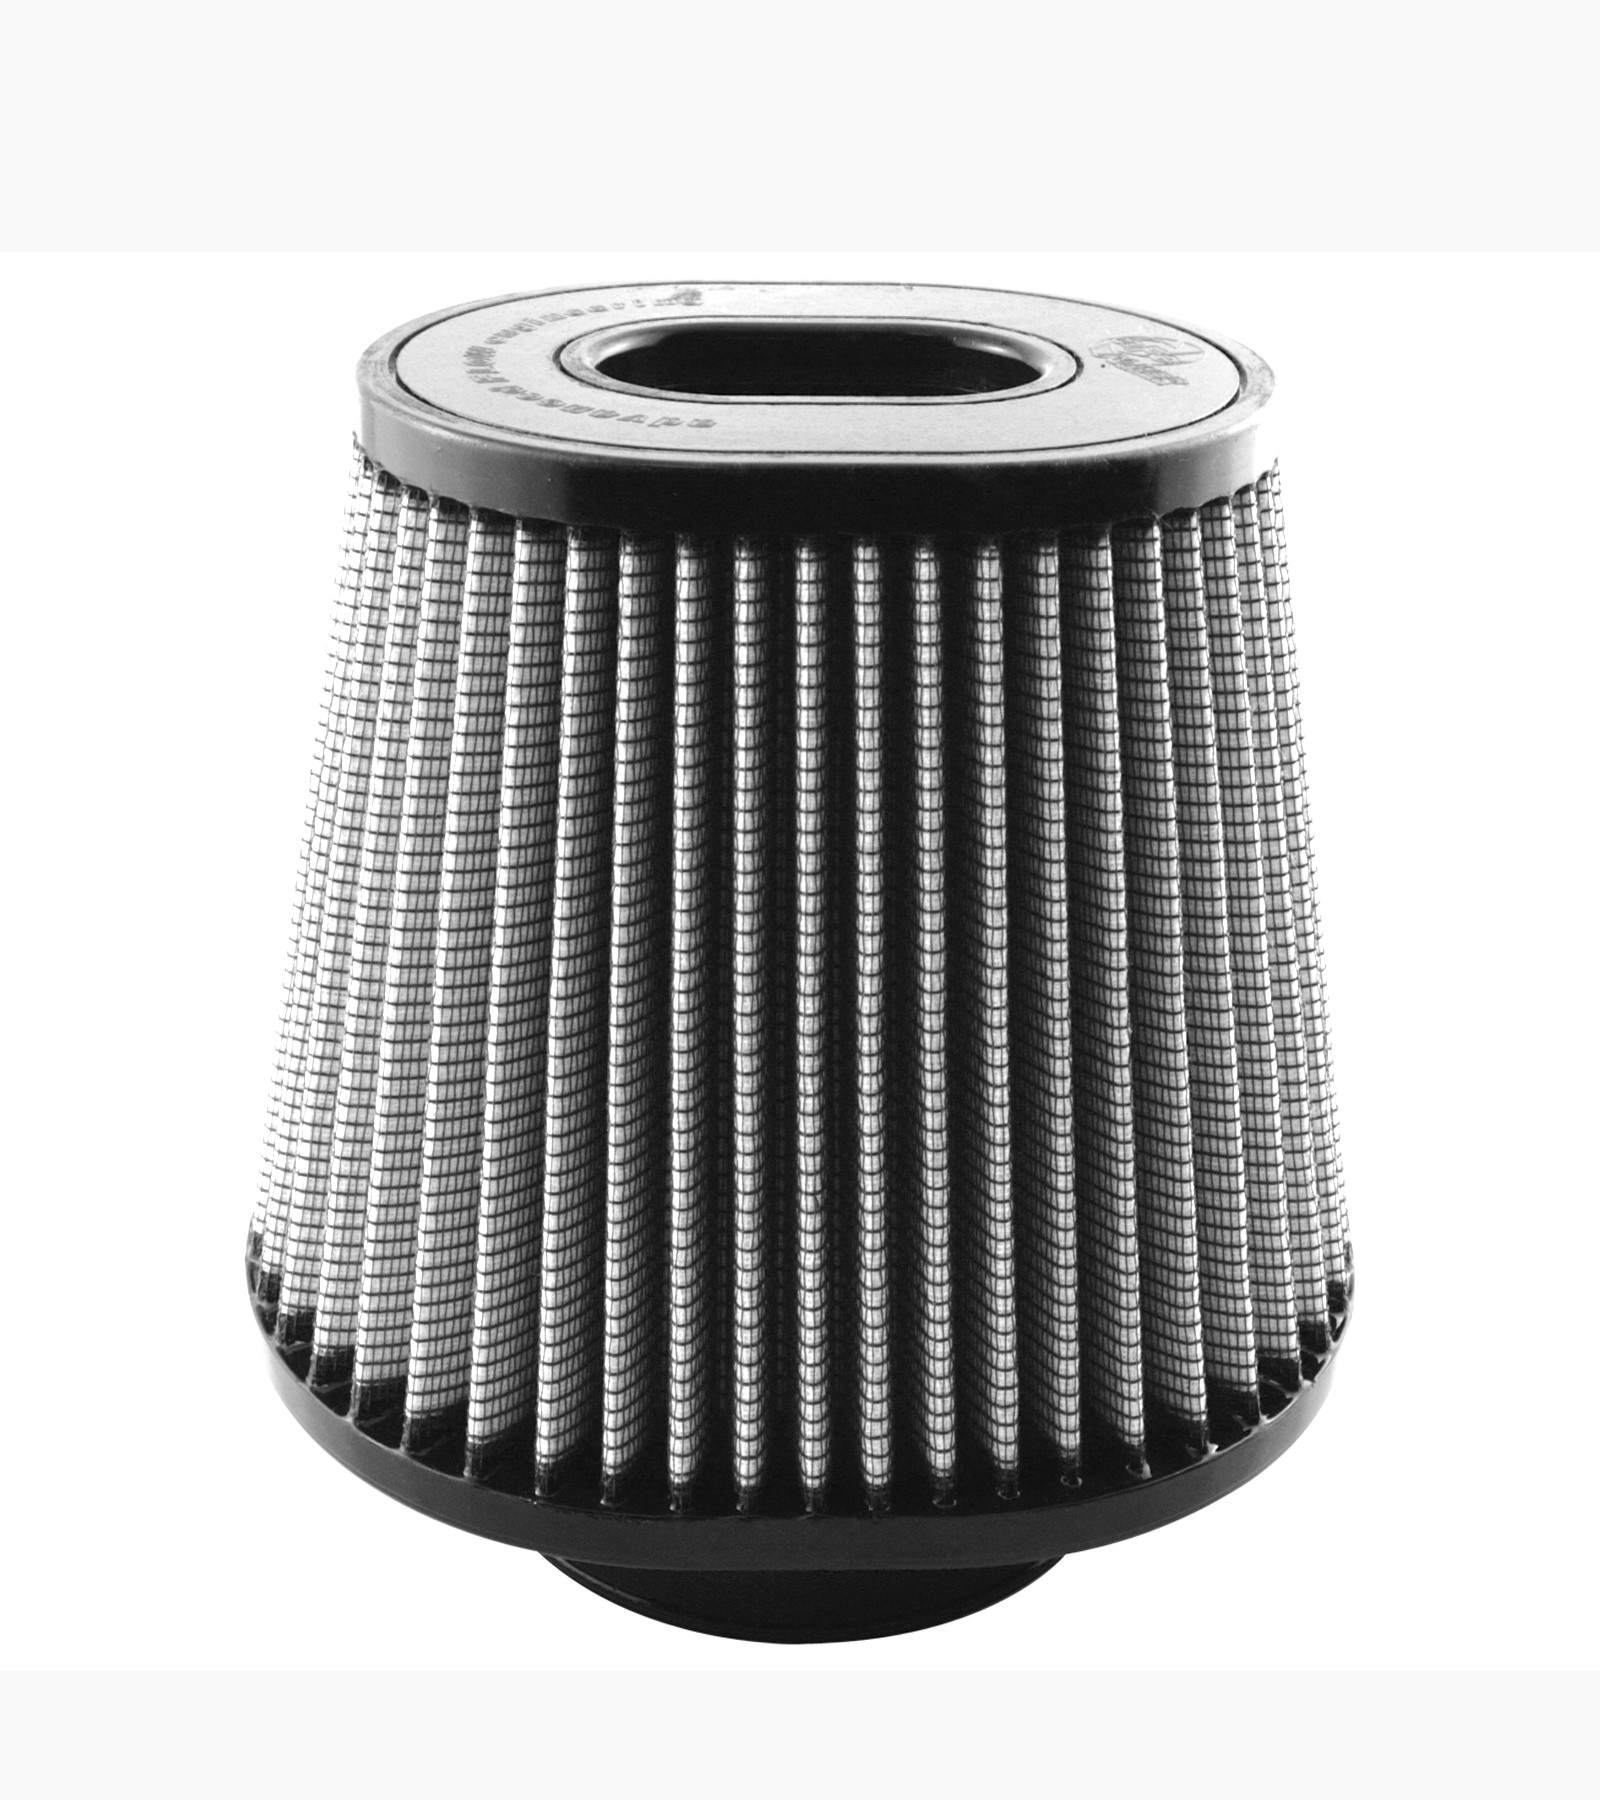 aFe POWER 21-91044 Magnum FLOW Pro DRY S Air Filter